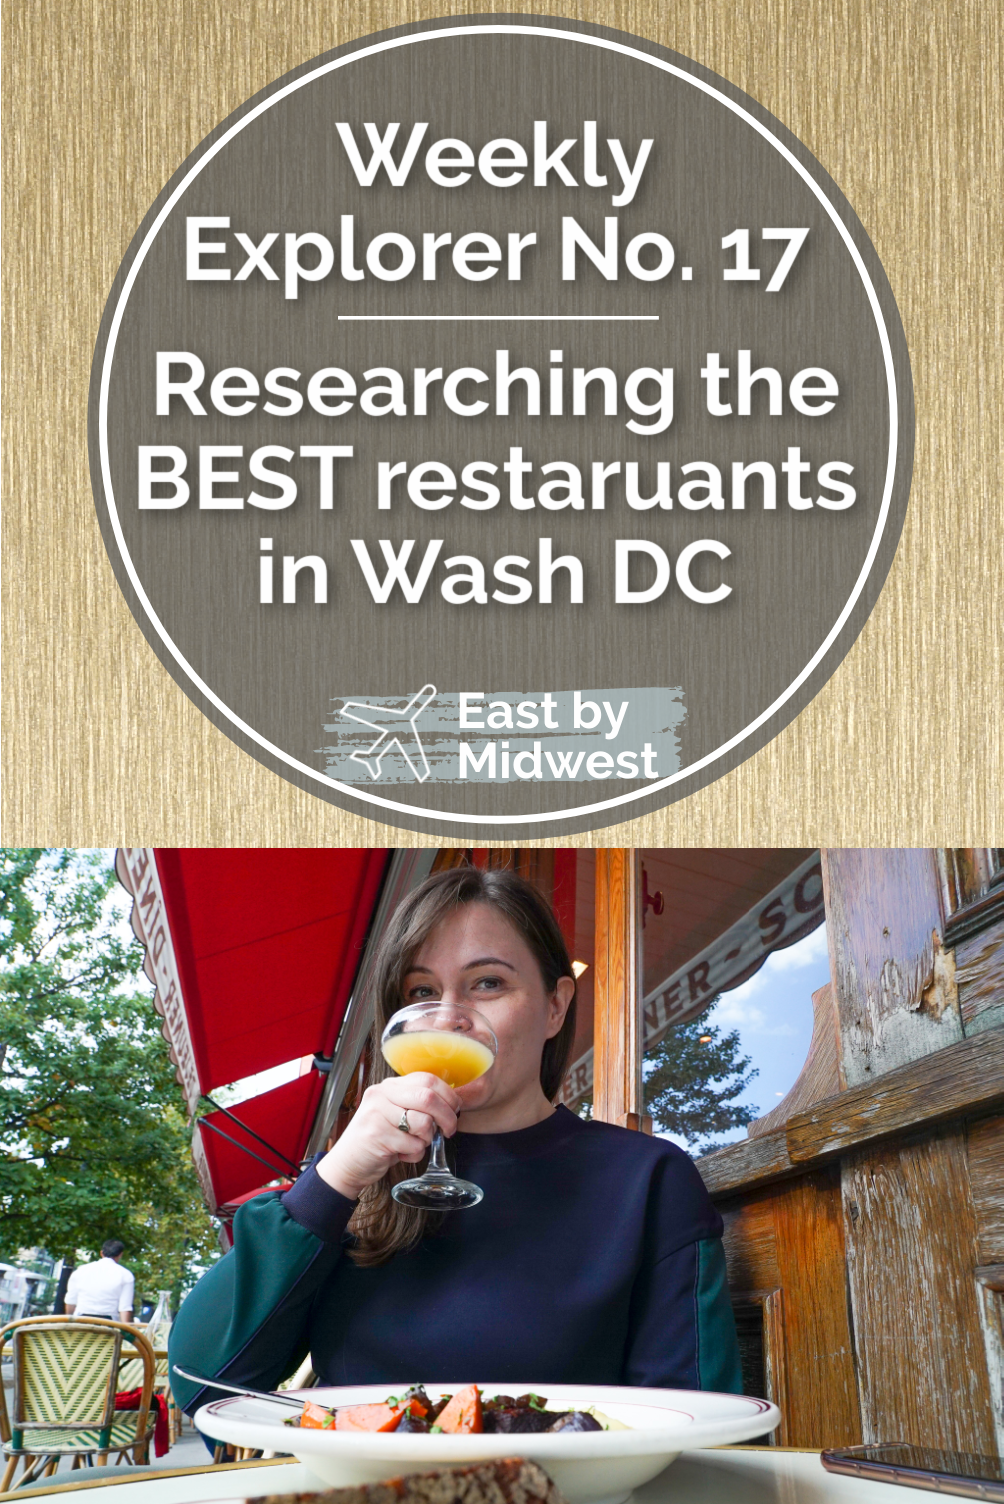 Weekly Explorer No. 17: Researching the BEST Foods in Washington, DC